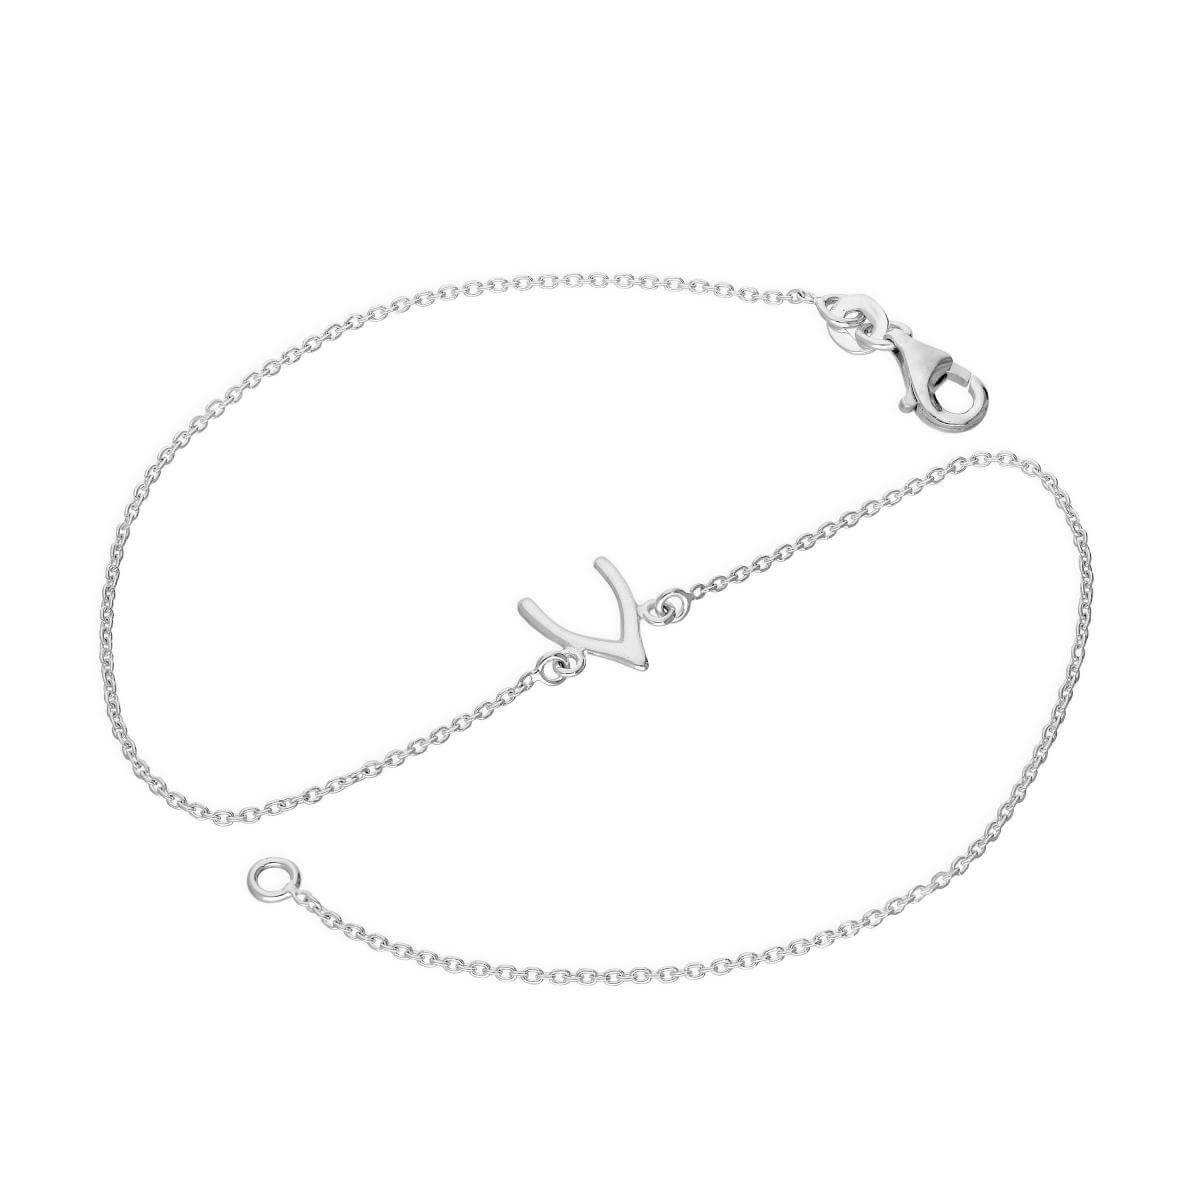 par tie jewelry chain inch anklet silver rope up me chy twisted bling italy